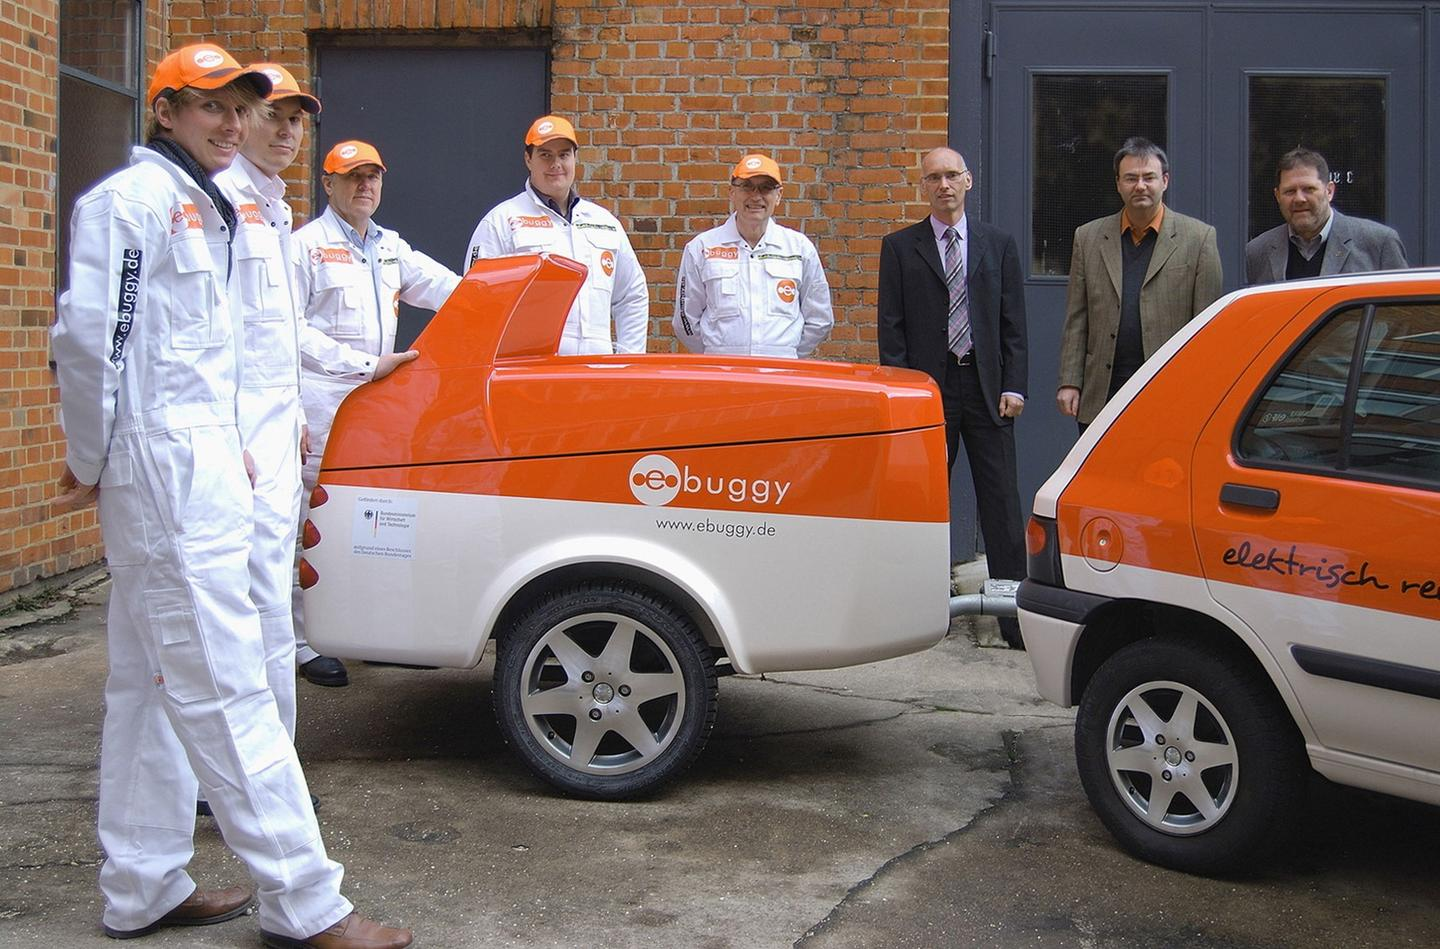 Some of the ebuggy team with one of their trailers